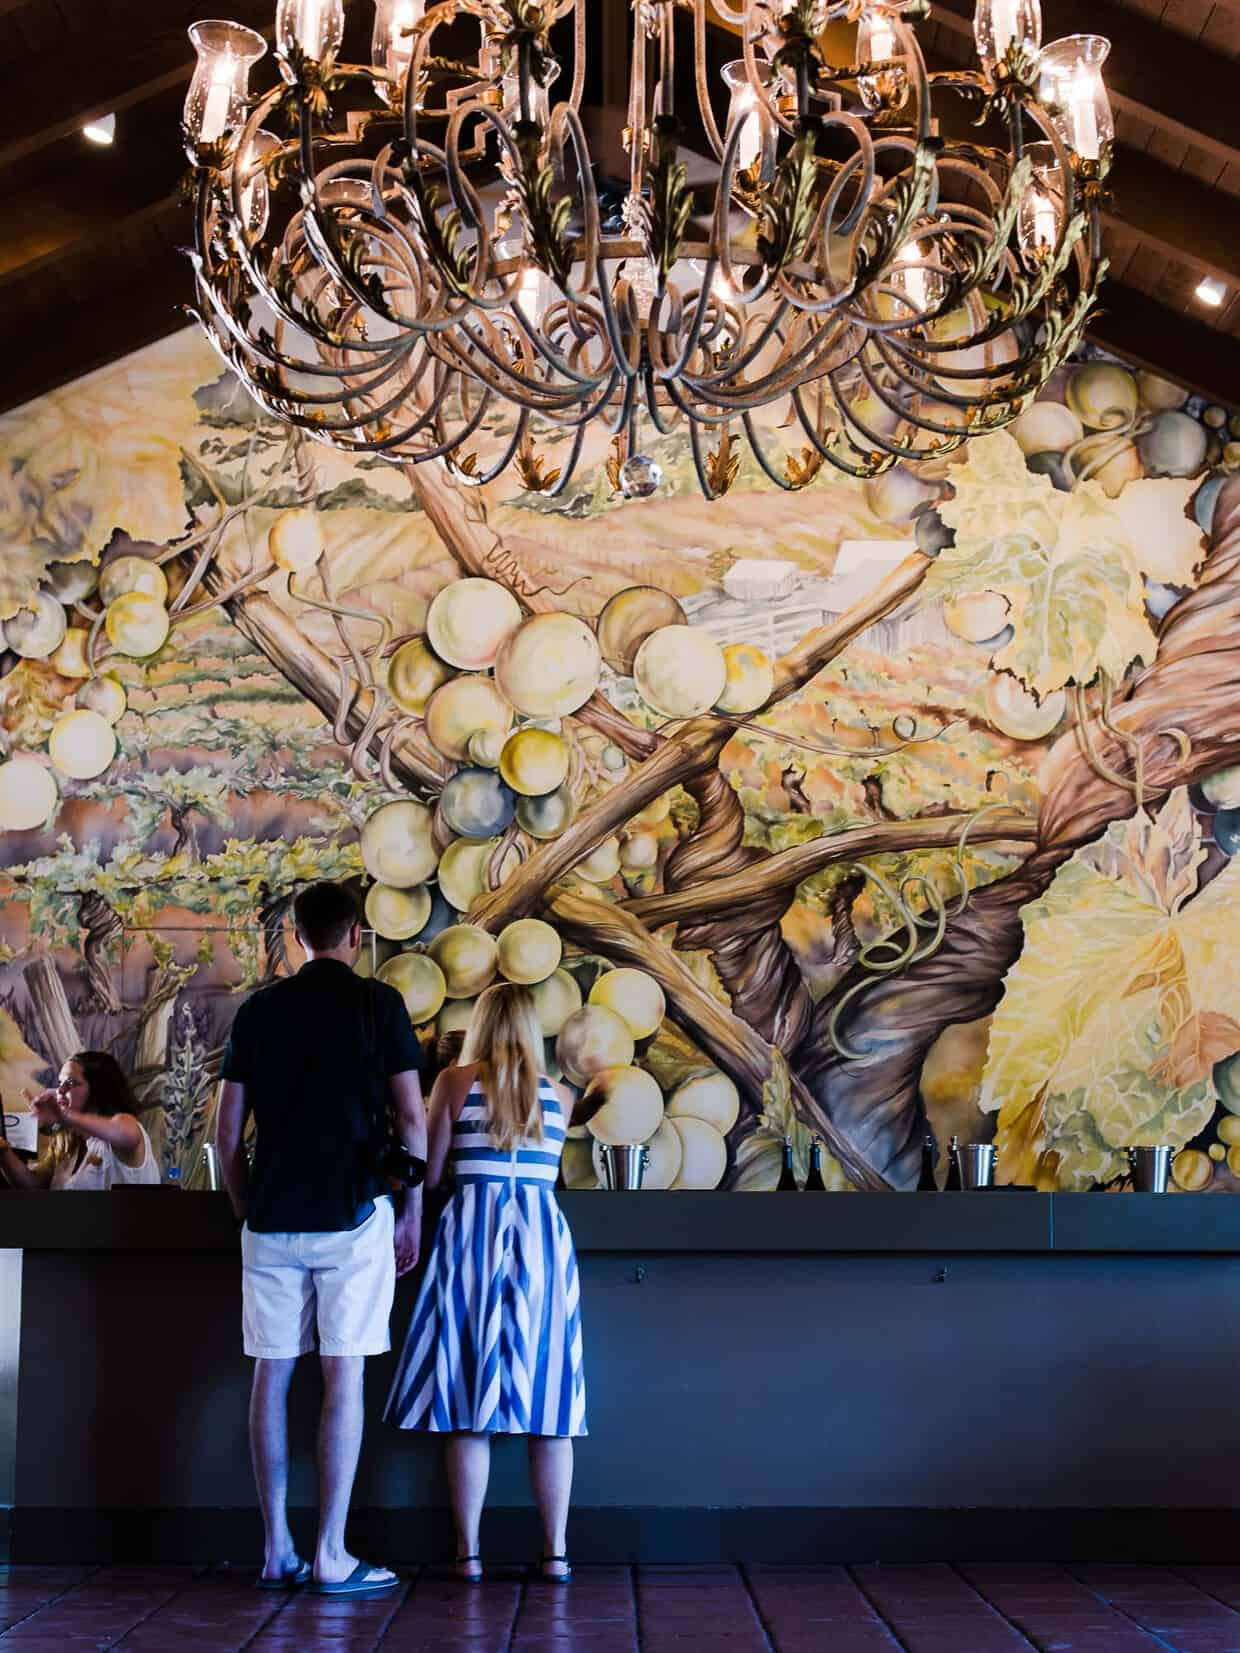 A man and a woman standing in front of a large mural under a large chandelier.